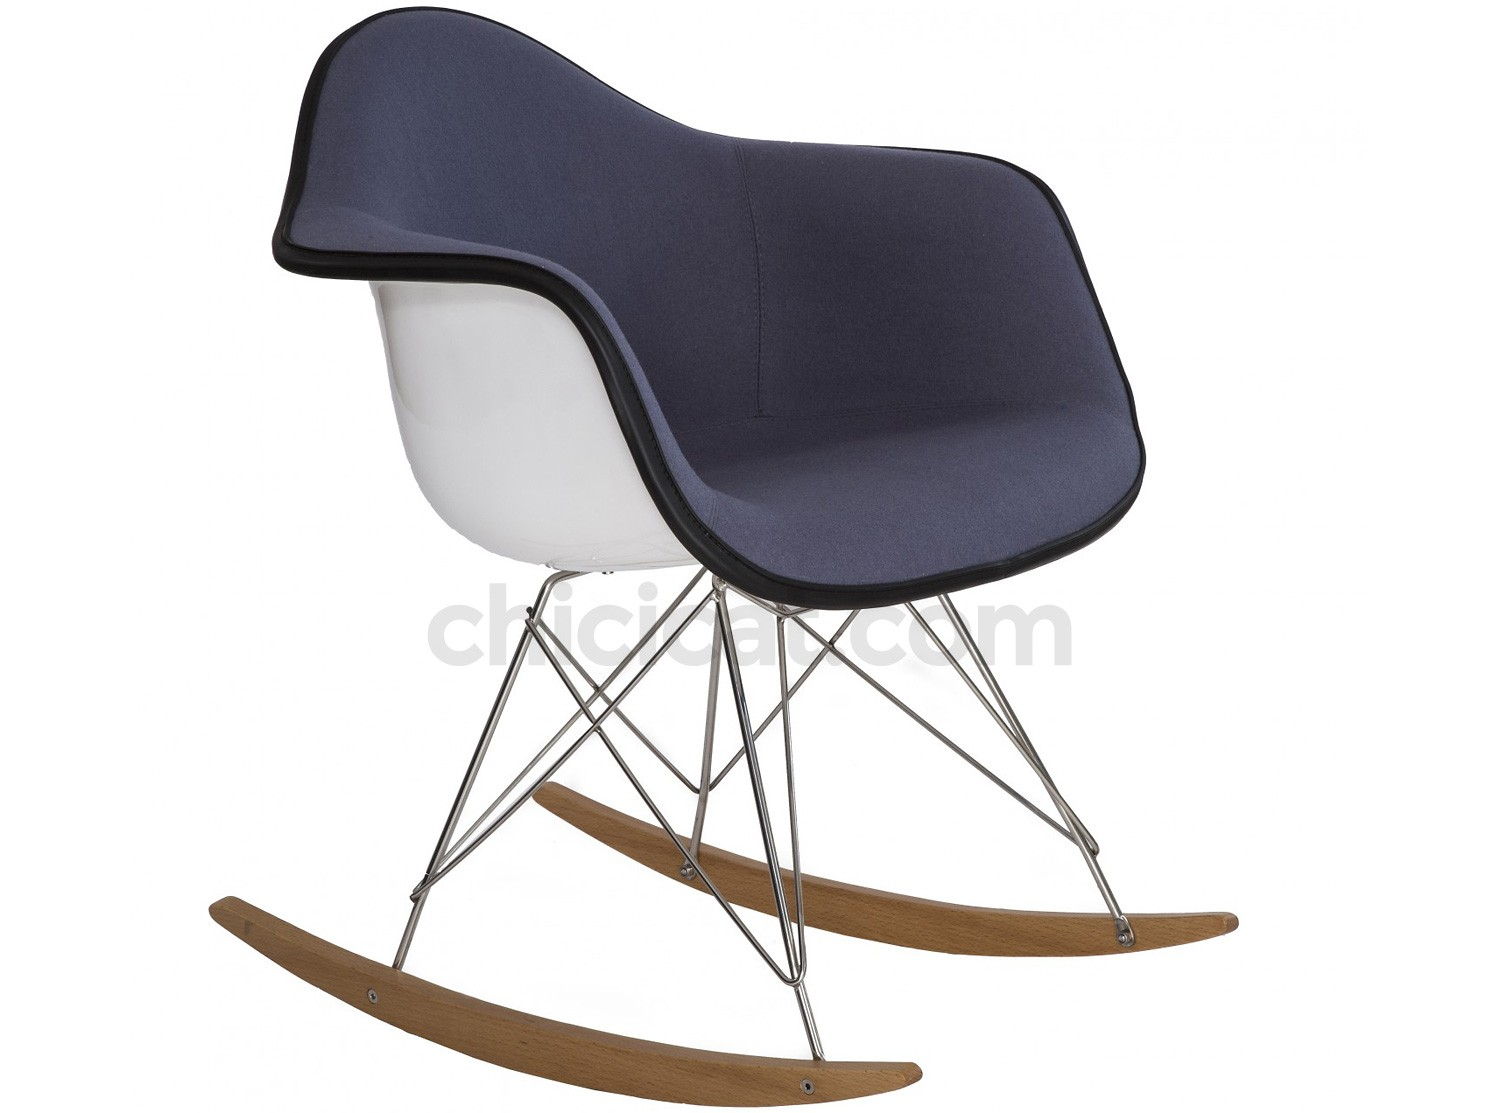 Eames Rar Rocking Chair Upholstered (Collector Replica) With Regard To Padded Rocking Chairs (#8 of 20)